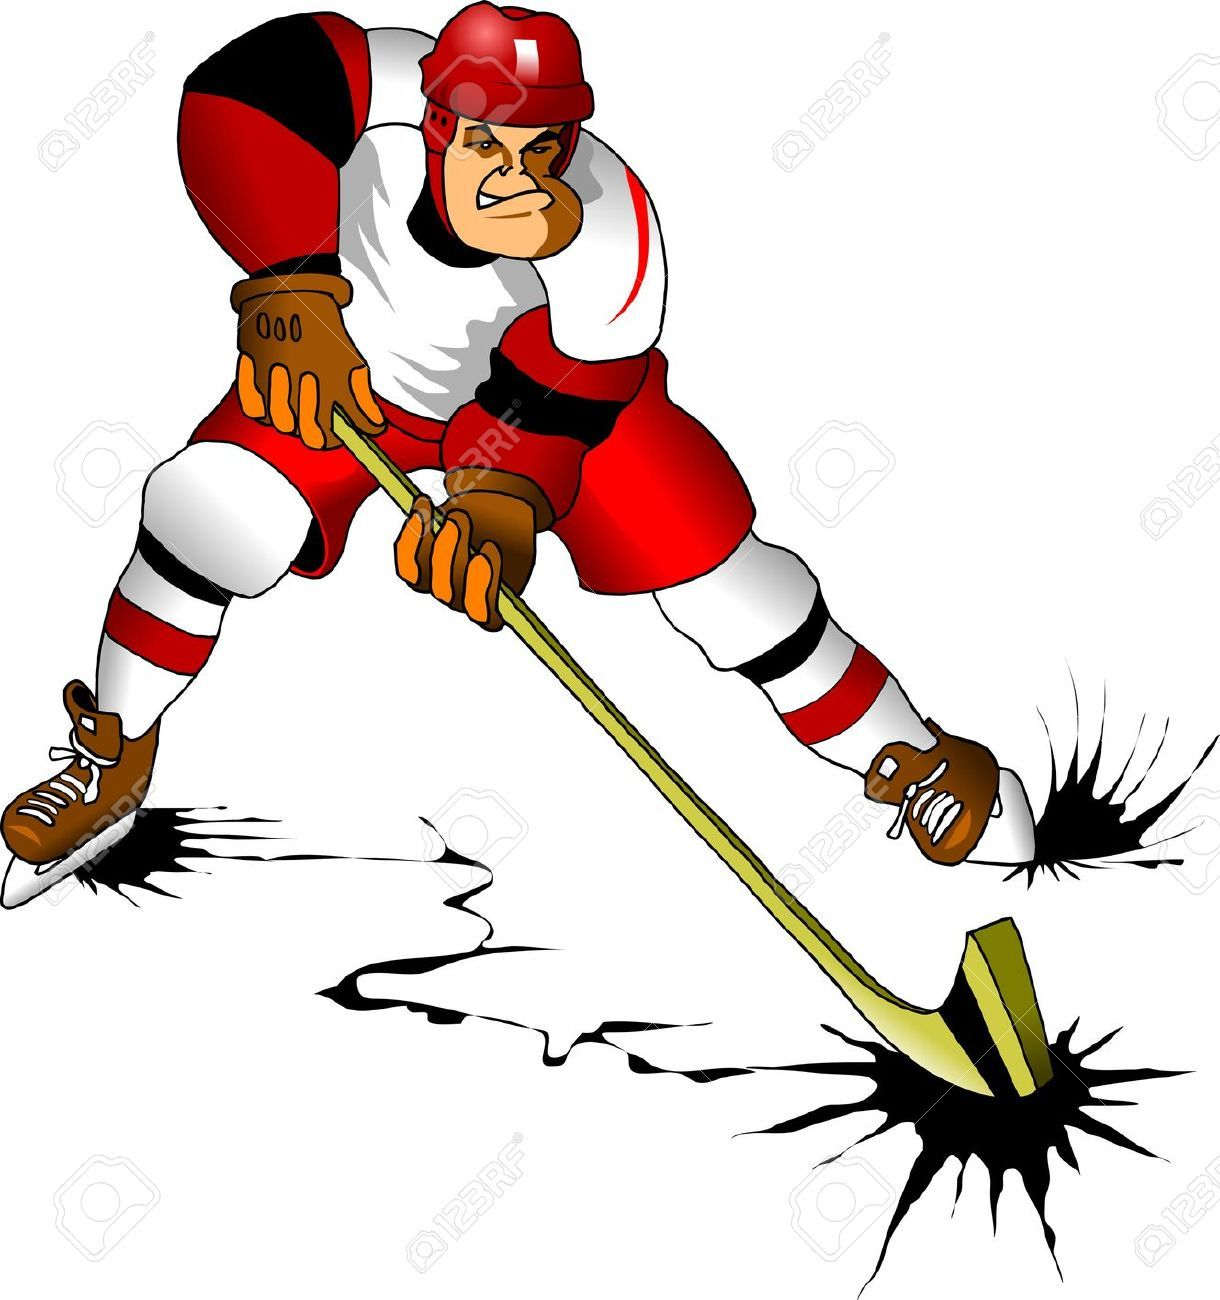 hockey player makes a strong shot on goal rival royalty free rh pinterest co uk revival clip art free revival clip art for churches